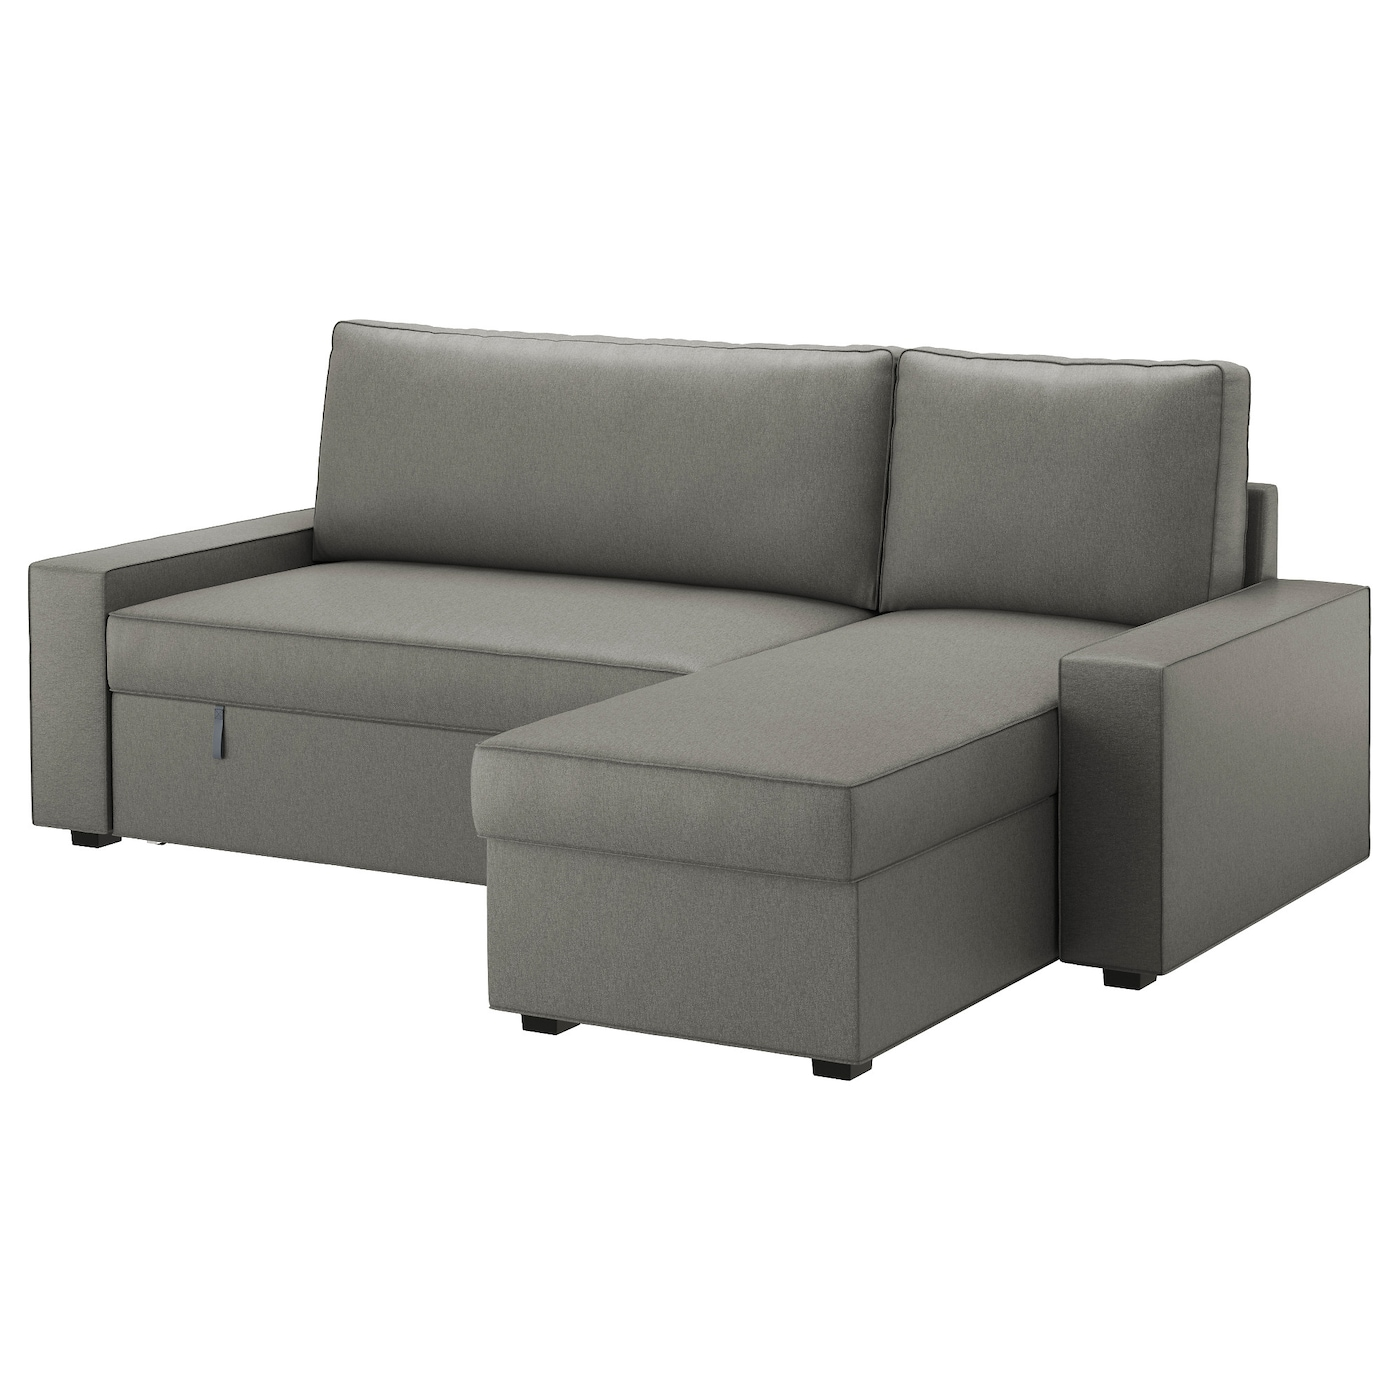 Sofa beds futons ikea for Bed chaise longue